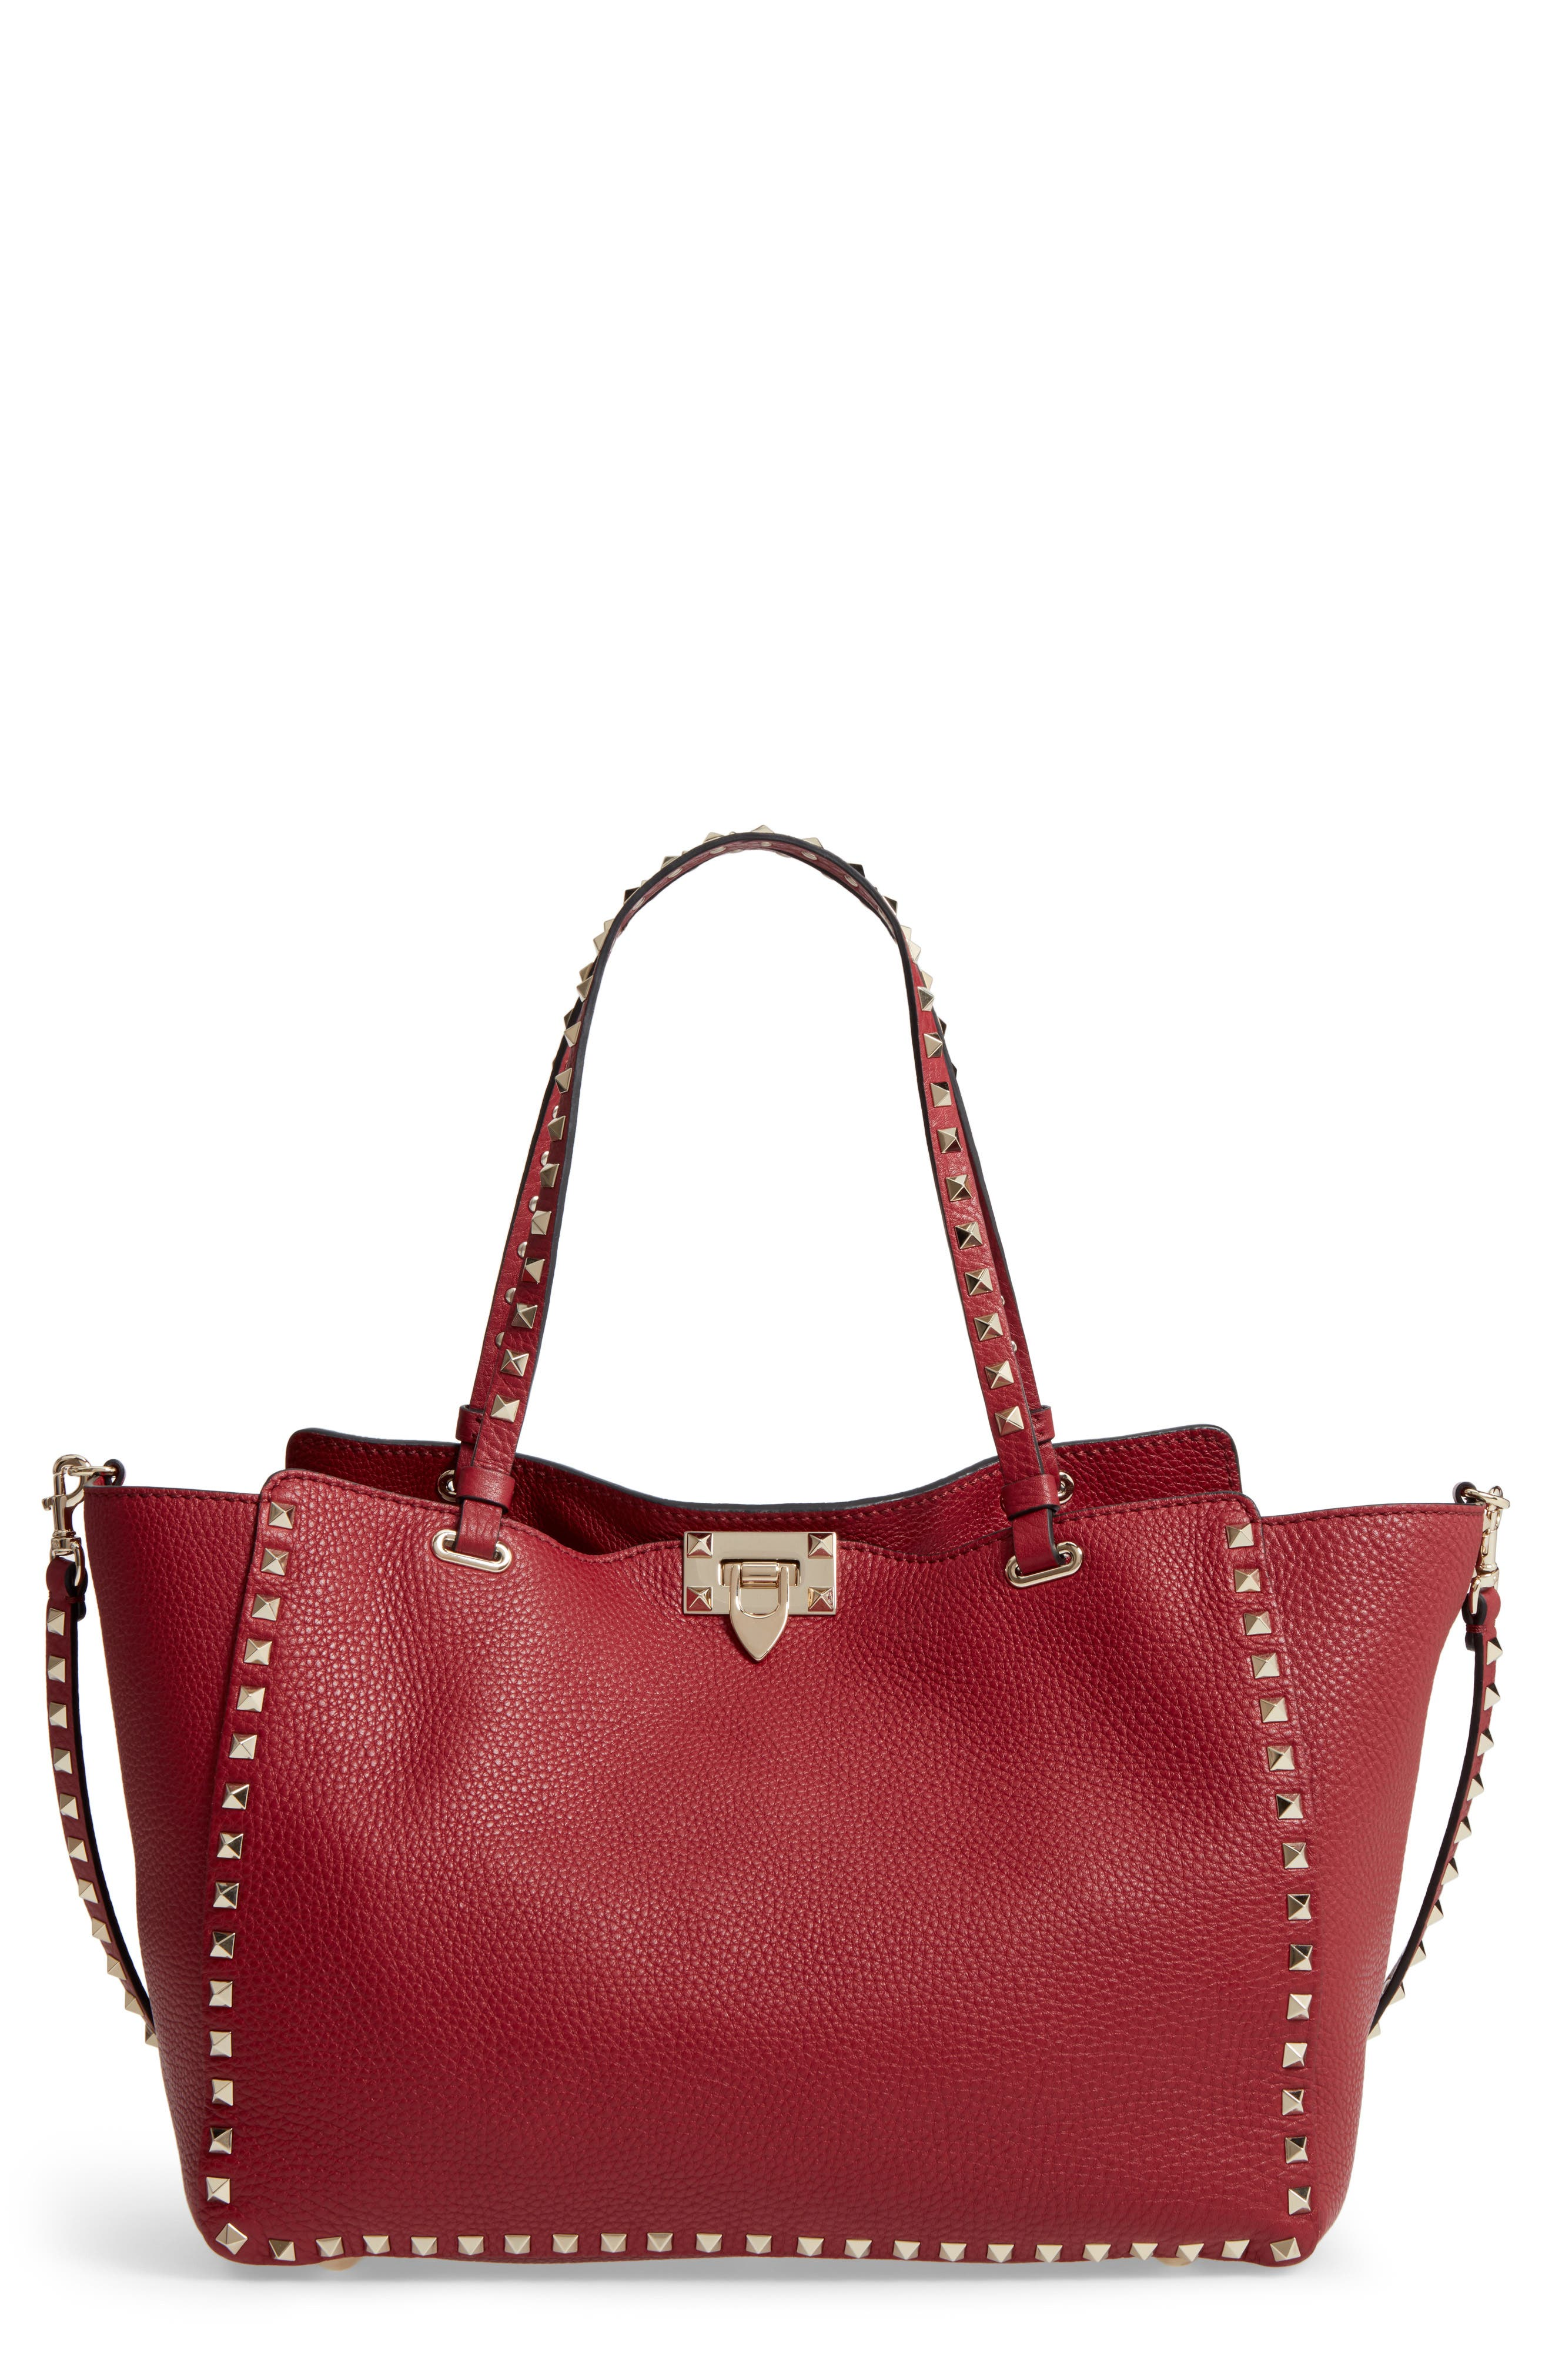 Valentino Medium Rockstud Grained Calfskin Leather Tote